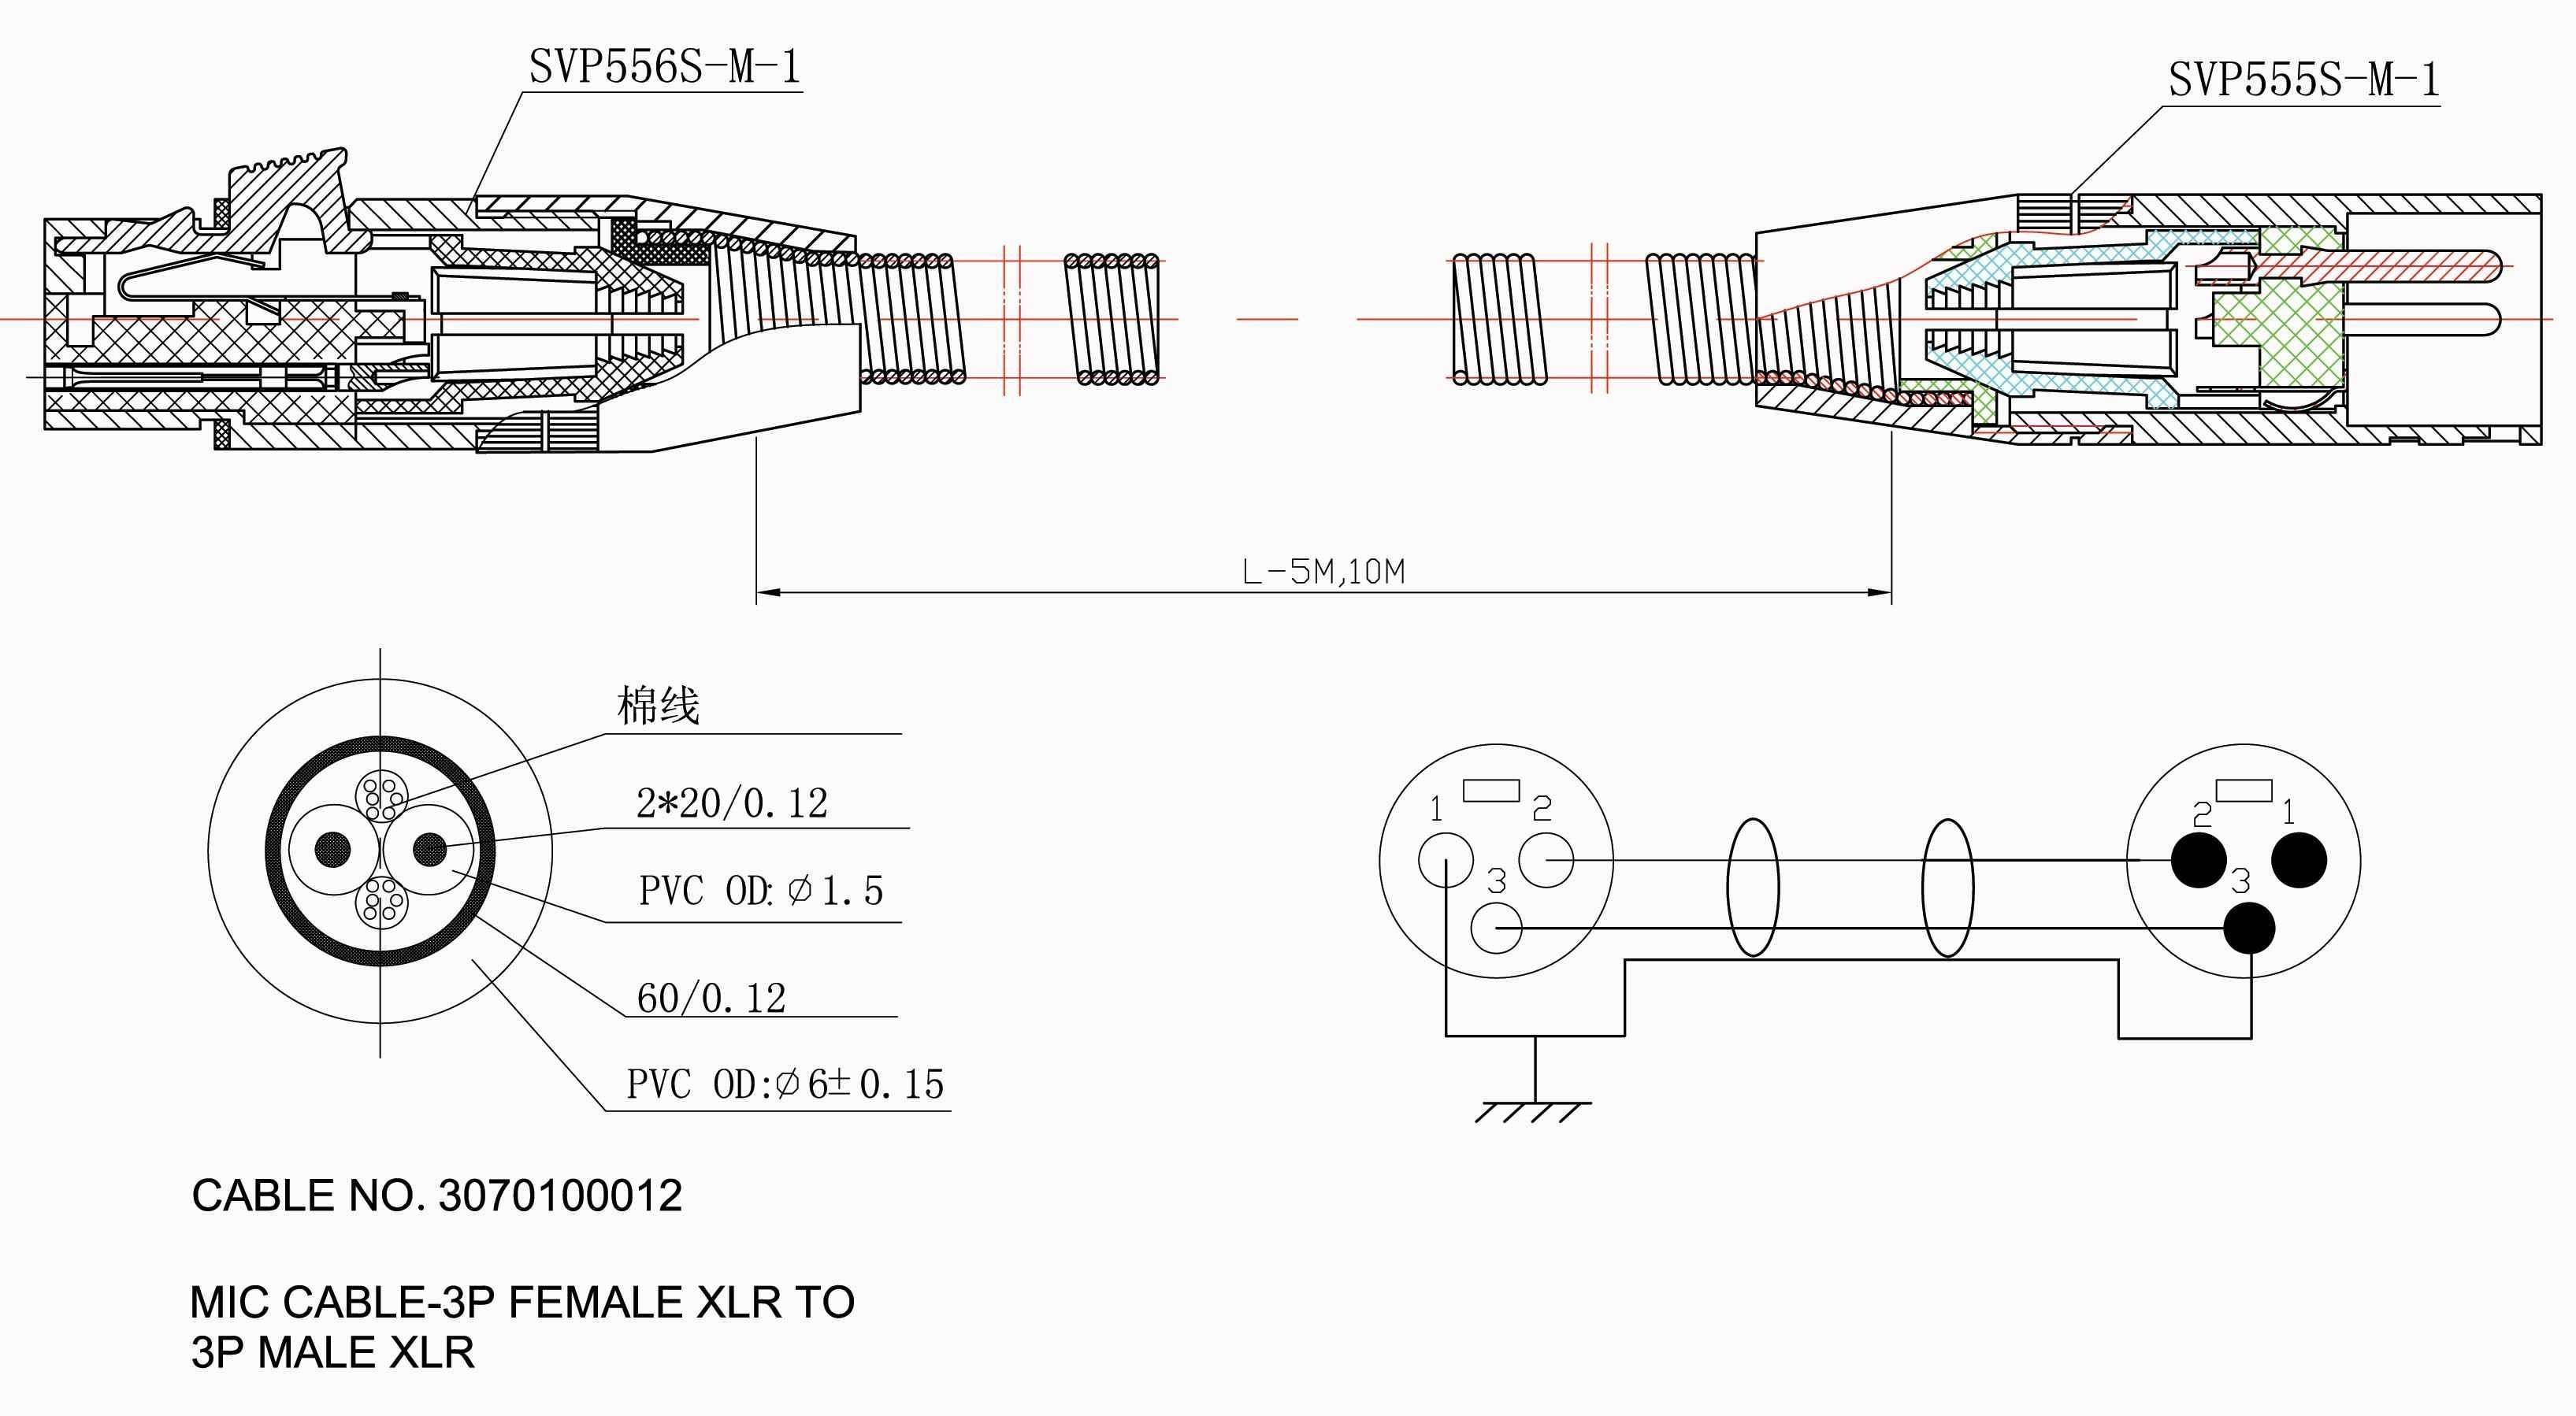 Wiring Diagram Outlets Beautiful Wiring Diagram Outlets Splendid Line Wiring Diagram Help Signalsbra Electrical Wiring Diagram Diagram Trailer Wiring Diagram